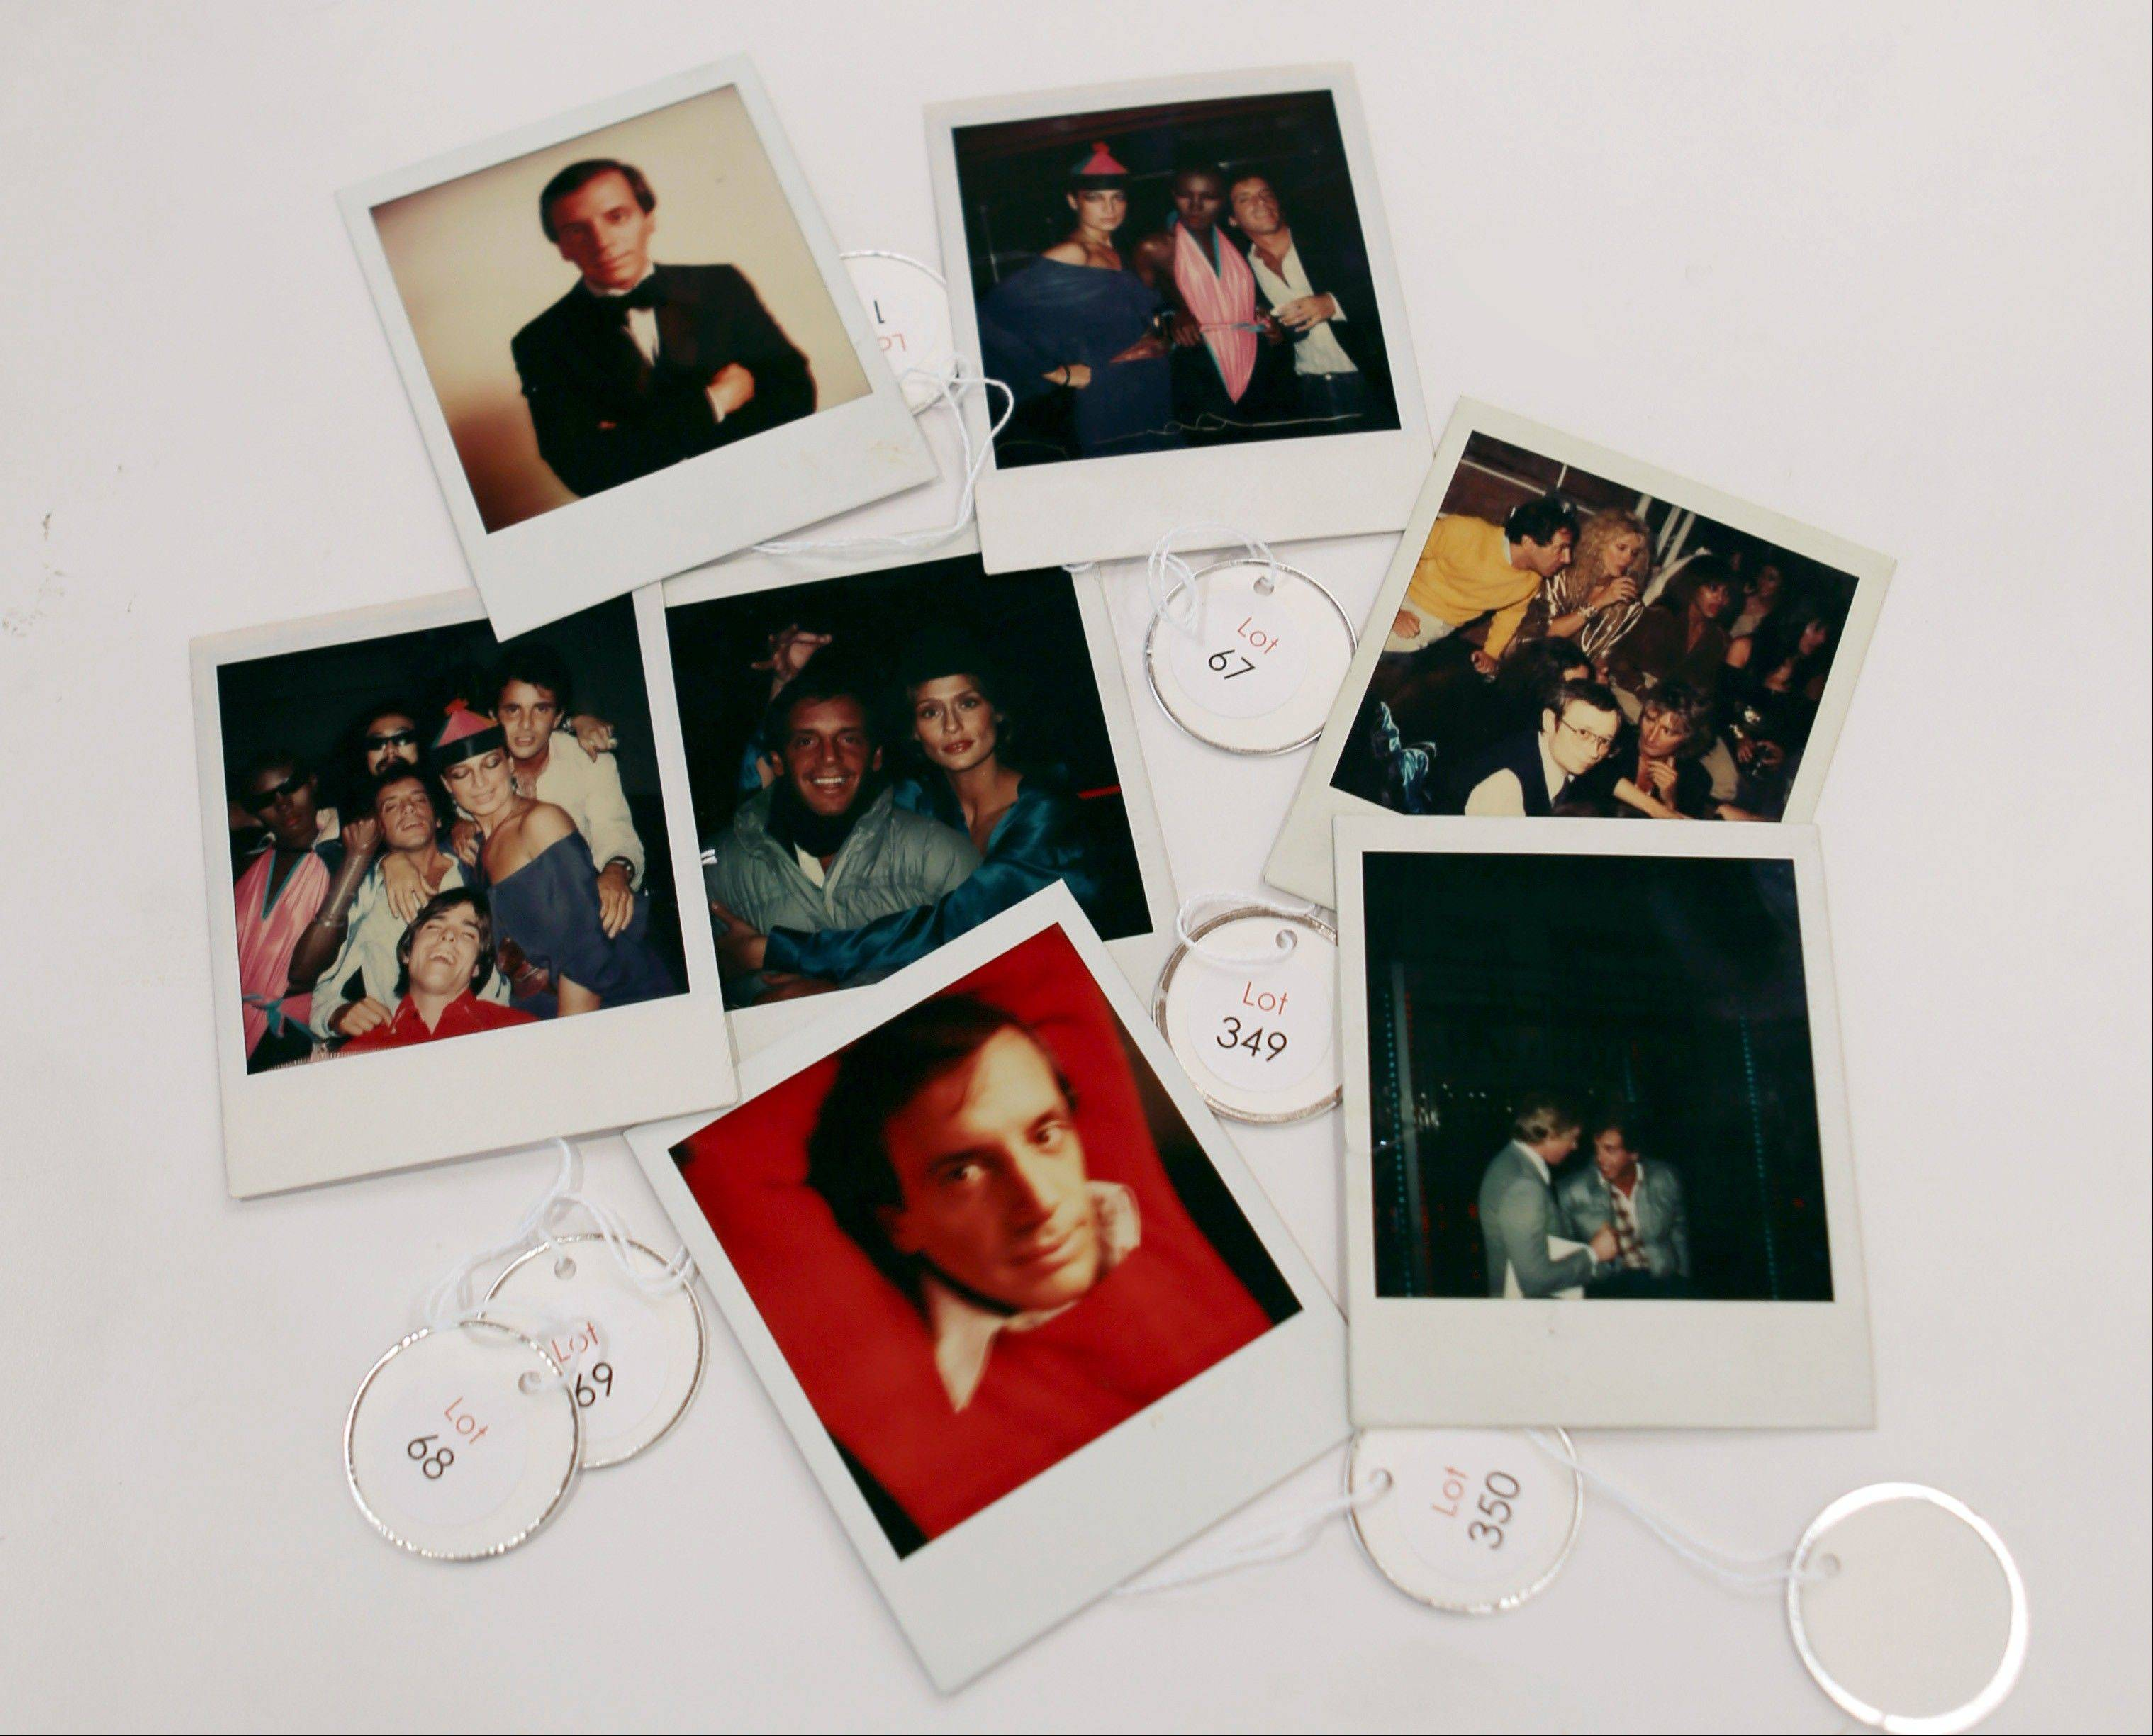 Various polaroids shot by Andy Warhol at Studio 54 are on display Wednesday in West Palm Beach, Fla.